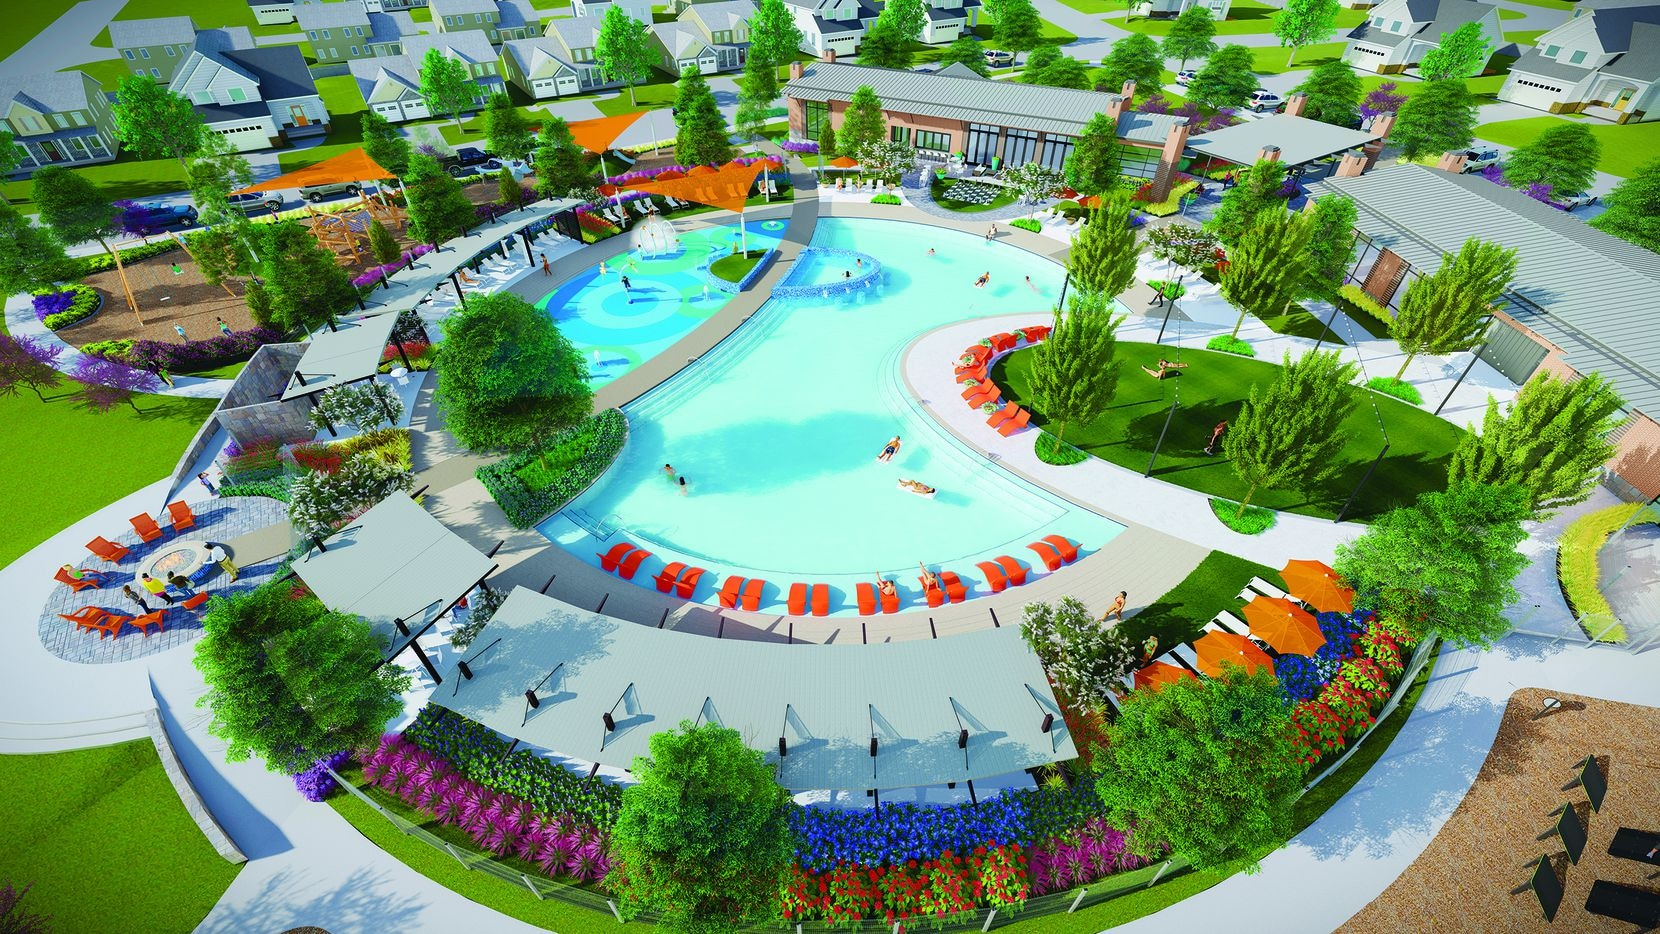 This artist's rendering shows the 4-plus-acre amenity complex at The Ridge at Northlake. It will have a circular pool, splash park, fitness centers and more.